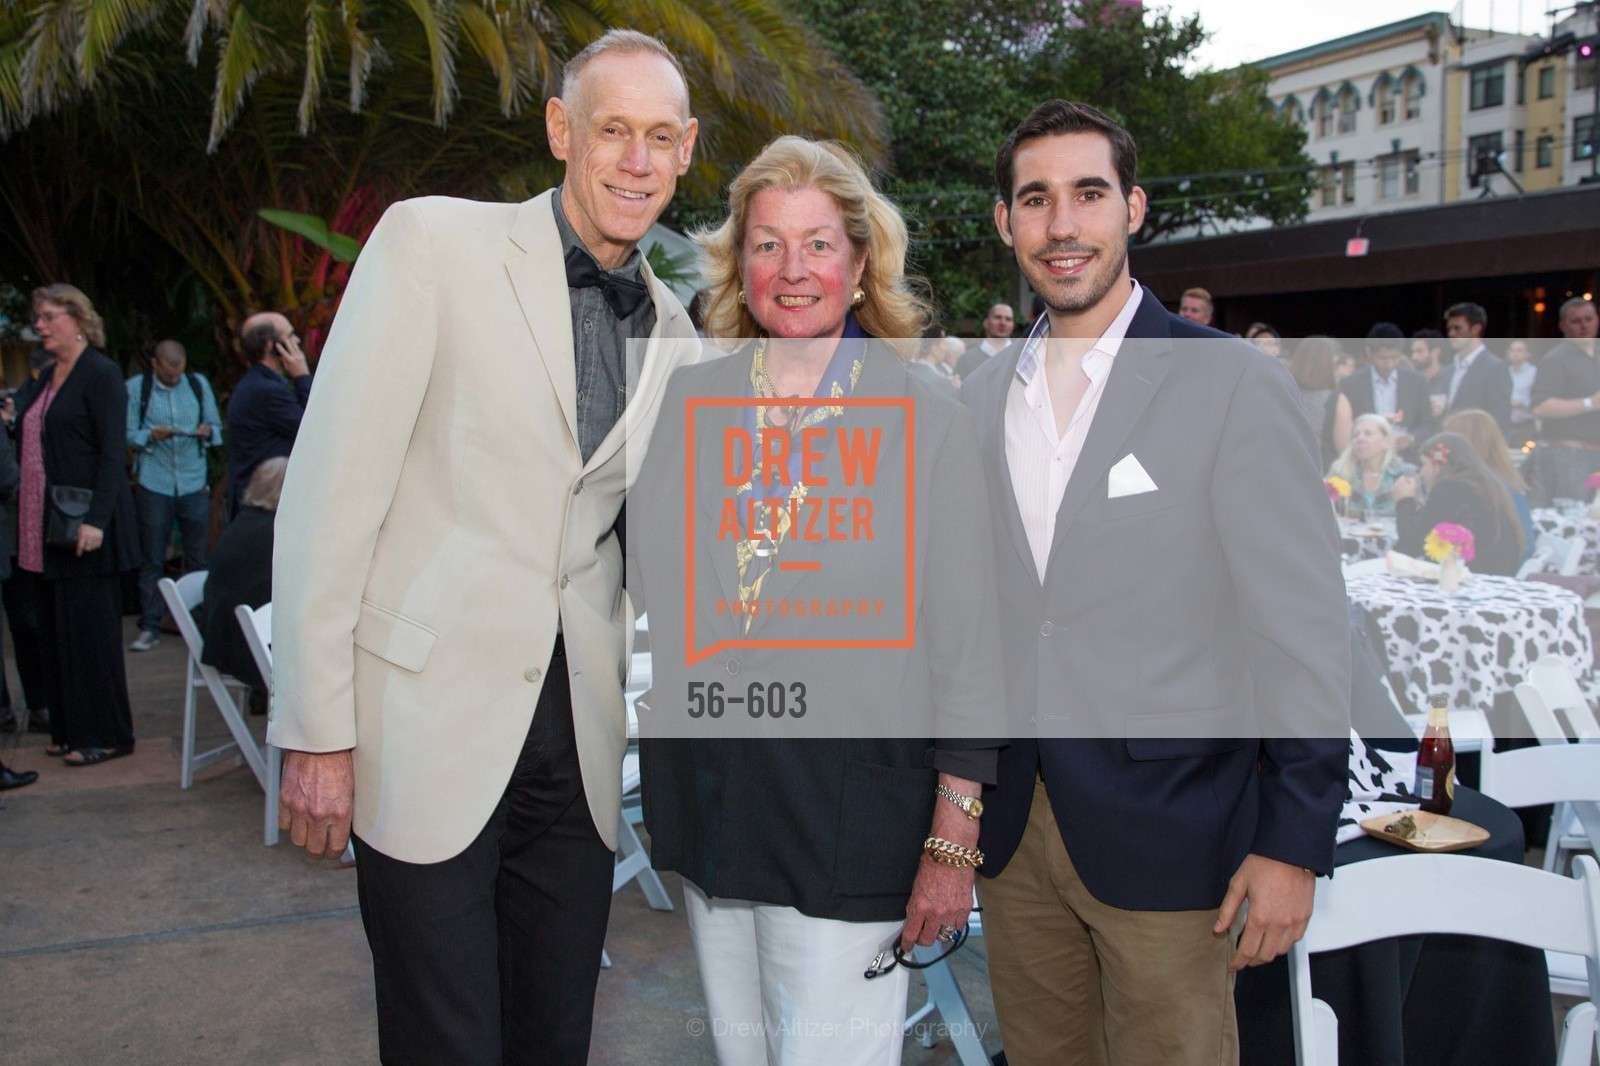 Tom Kelley, Laura King Pfaff, George Revel, 22nd Annual TNDC CELEBRITY POOL TOSS, US, October 9th, 2014,Drew Altizer, Drew Altizer Photography, full-service agency, private events, San Francisco photographer, photographer california